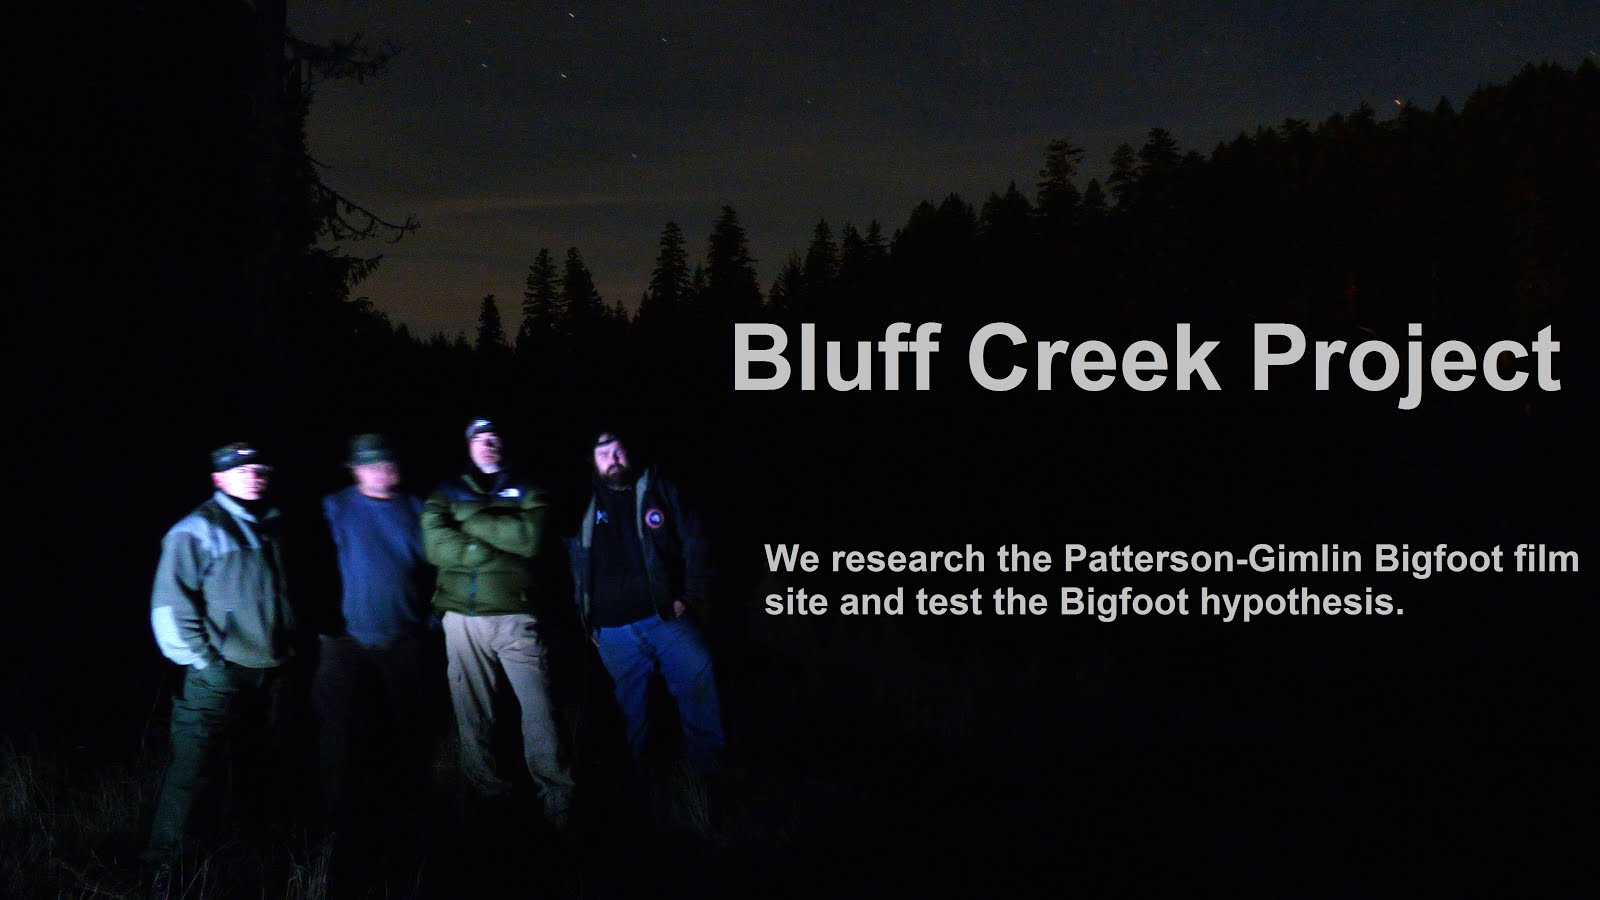 Bluff Creek Project